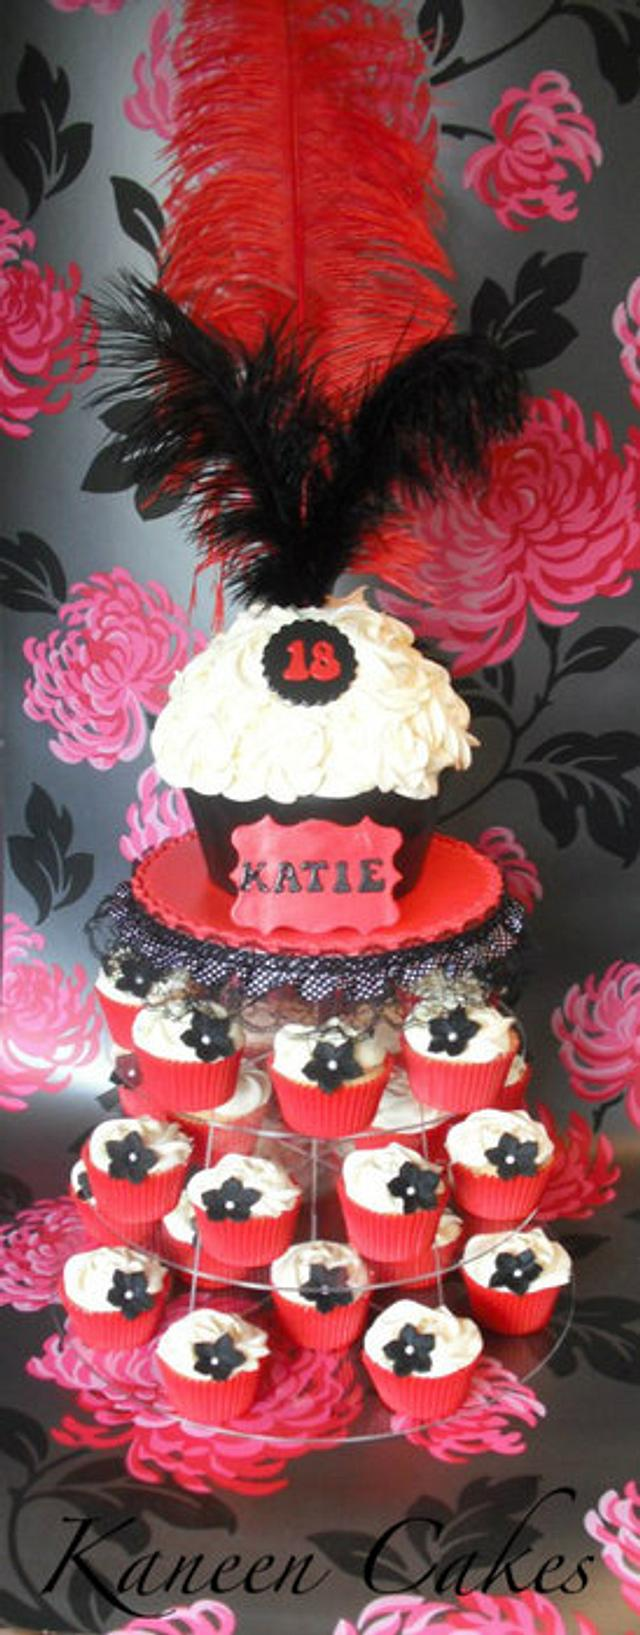 Burlesque themed giant cupcake and smaller cupcakes